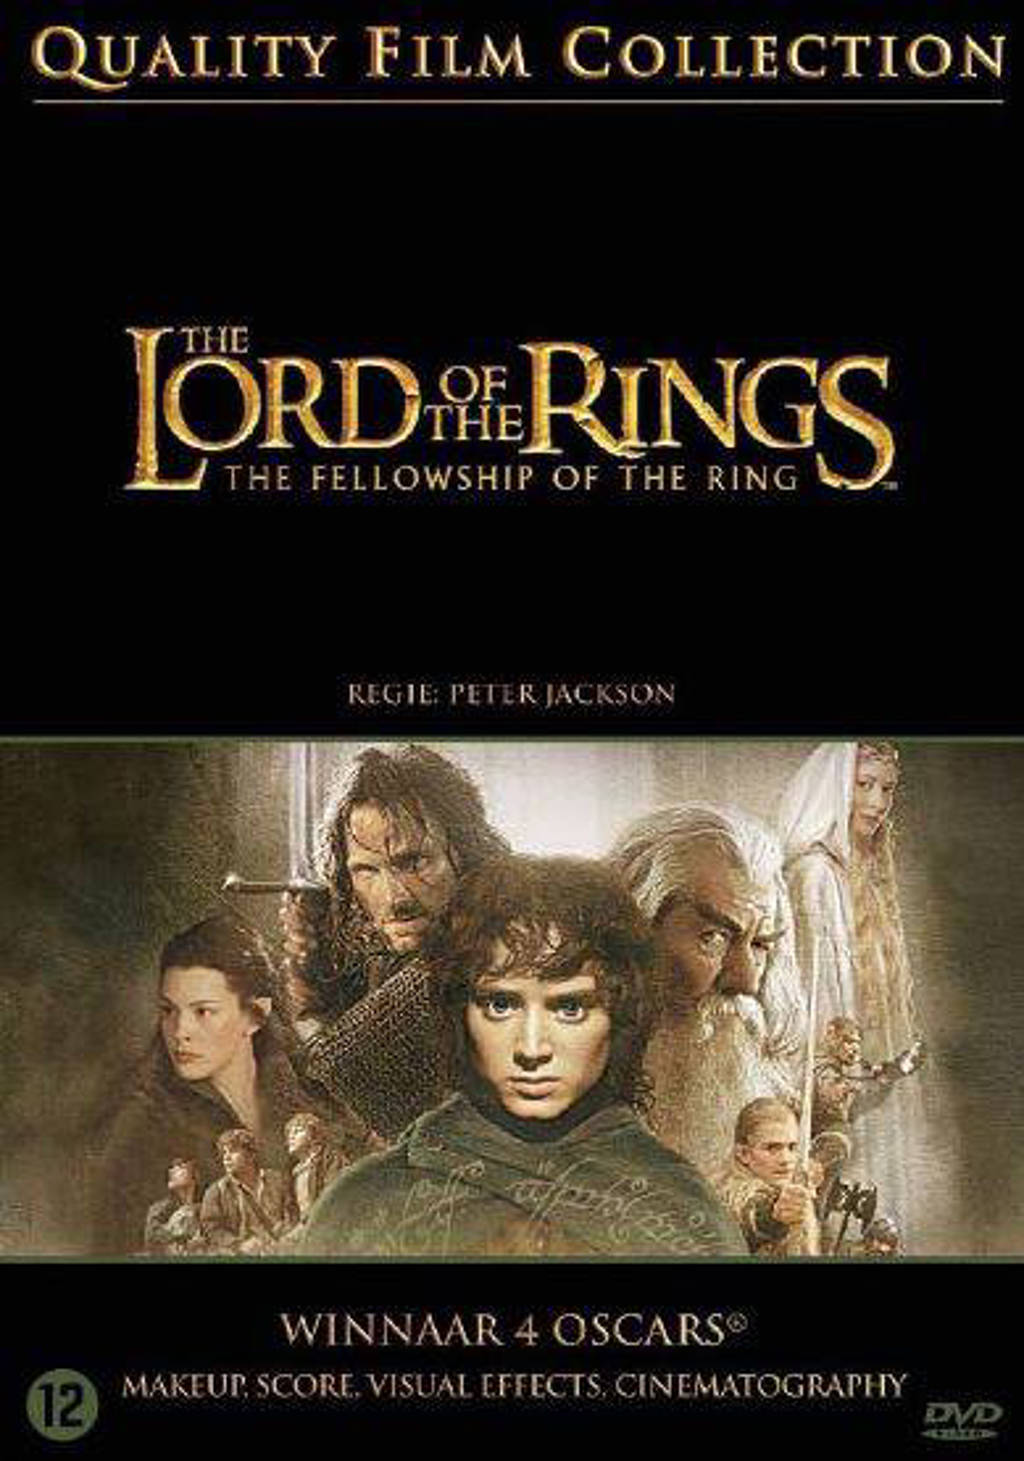 Lord of the rings - Fellowship of the ring (DVD)